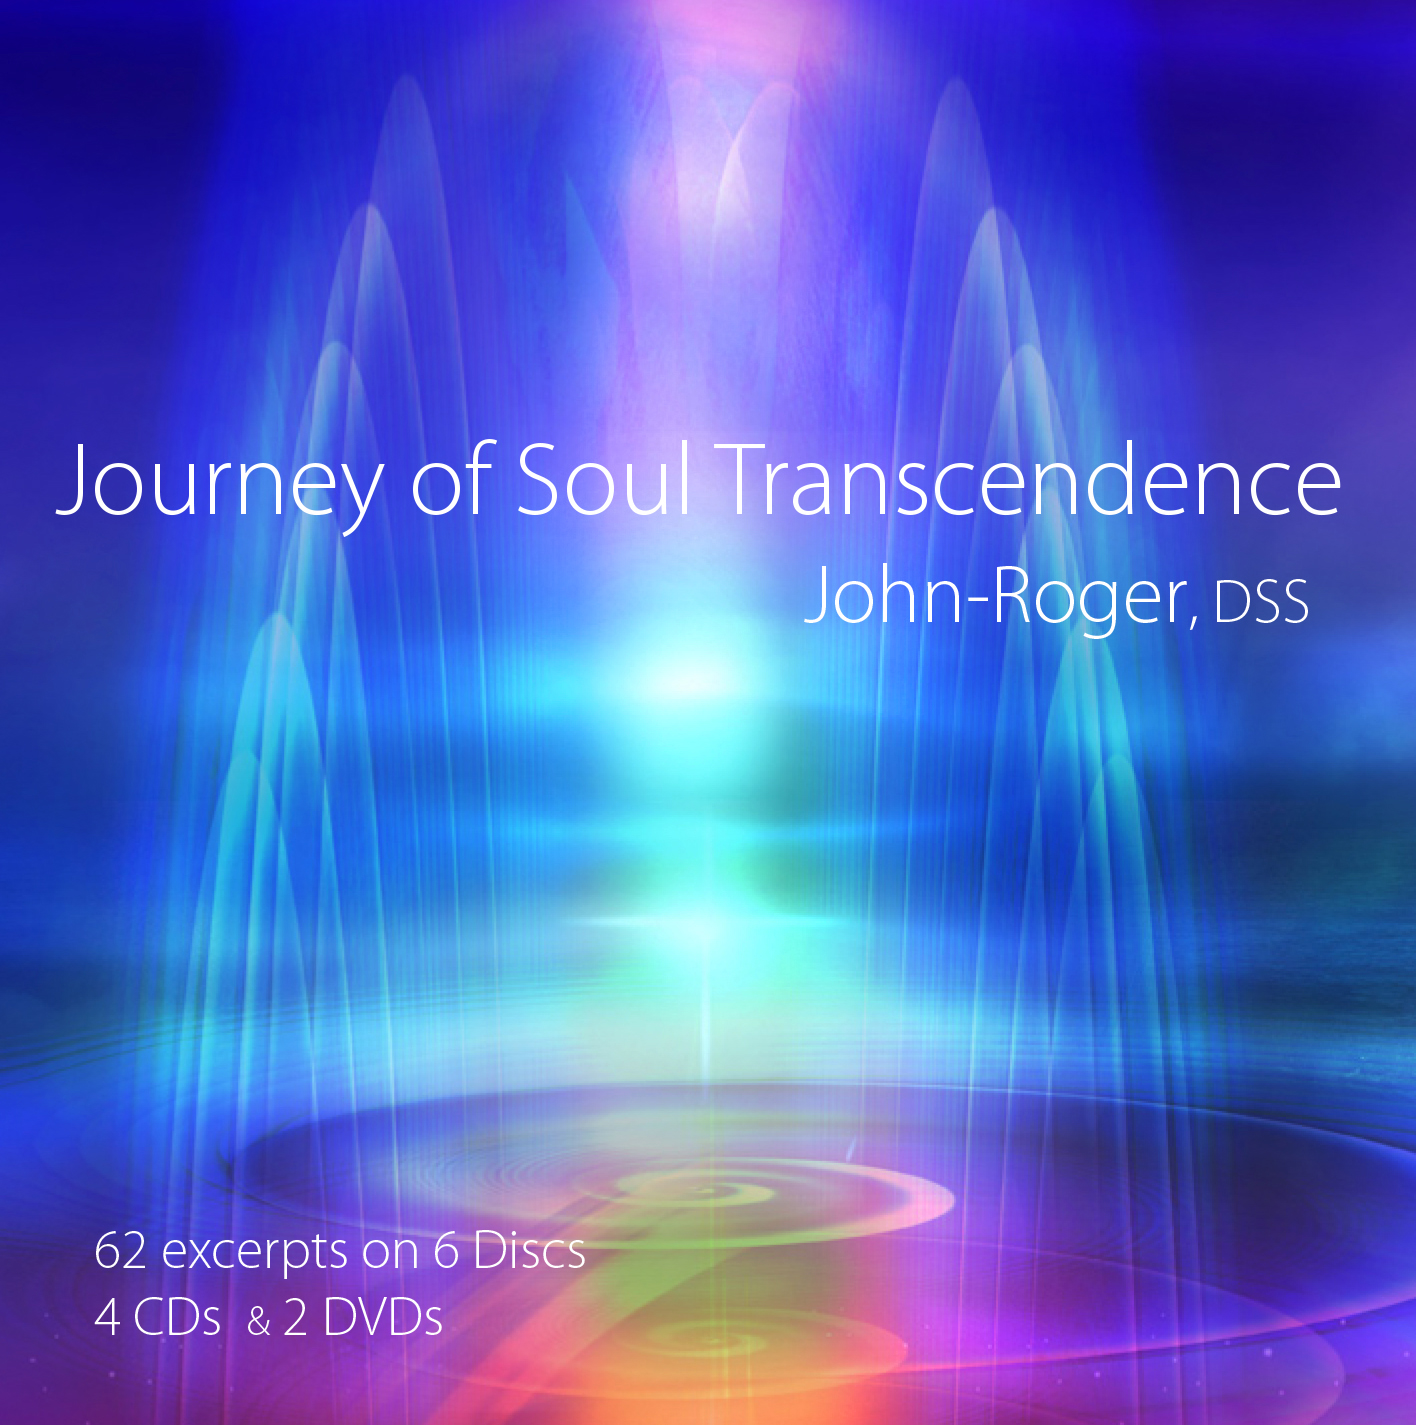 Journey of Soul Transcendence MP3/MP4